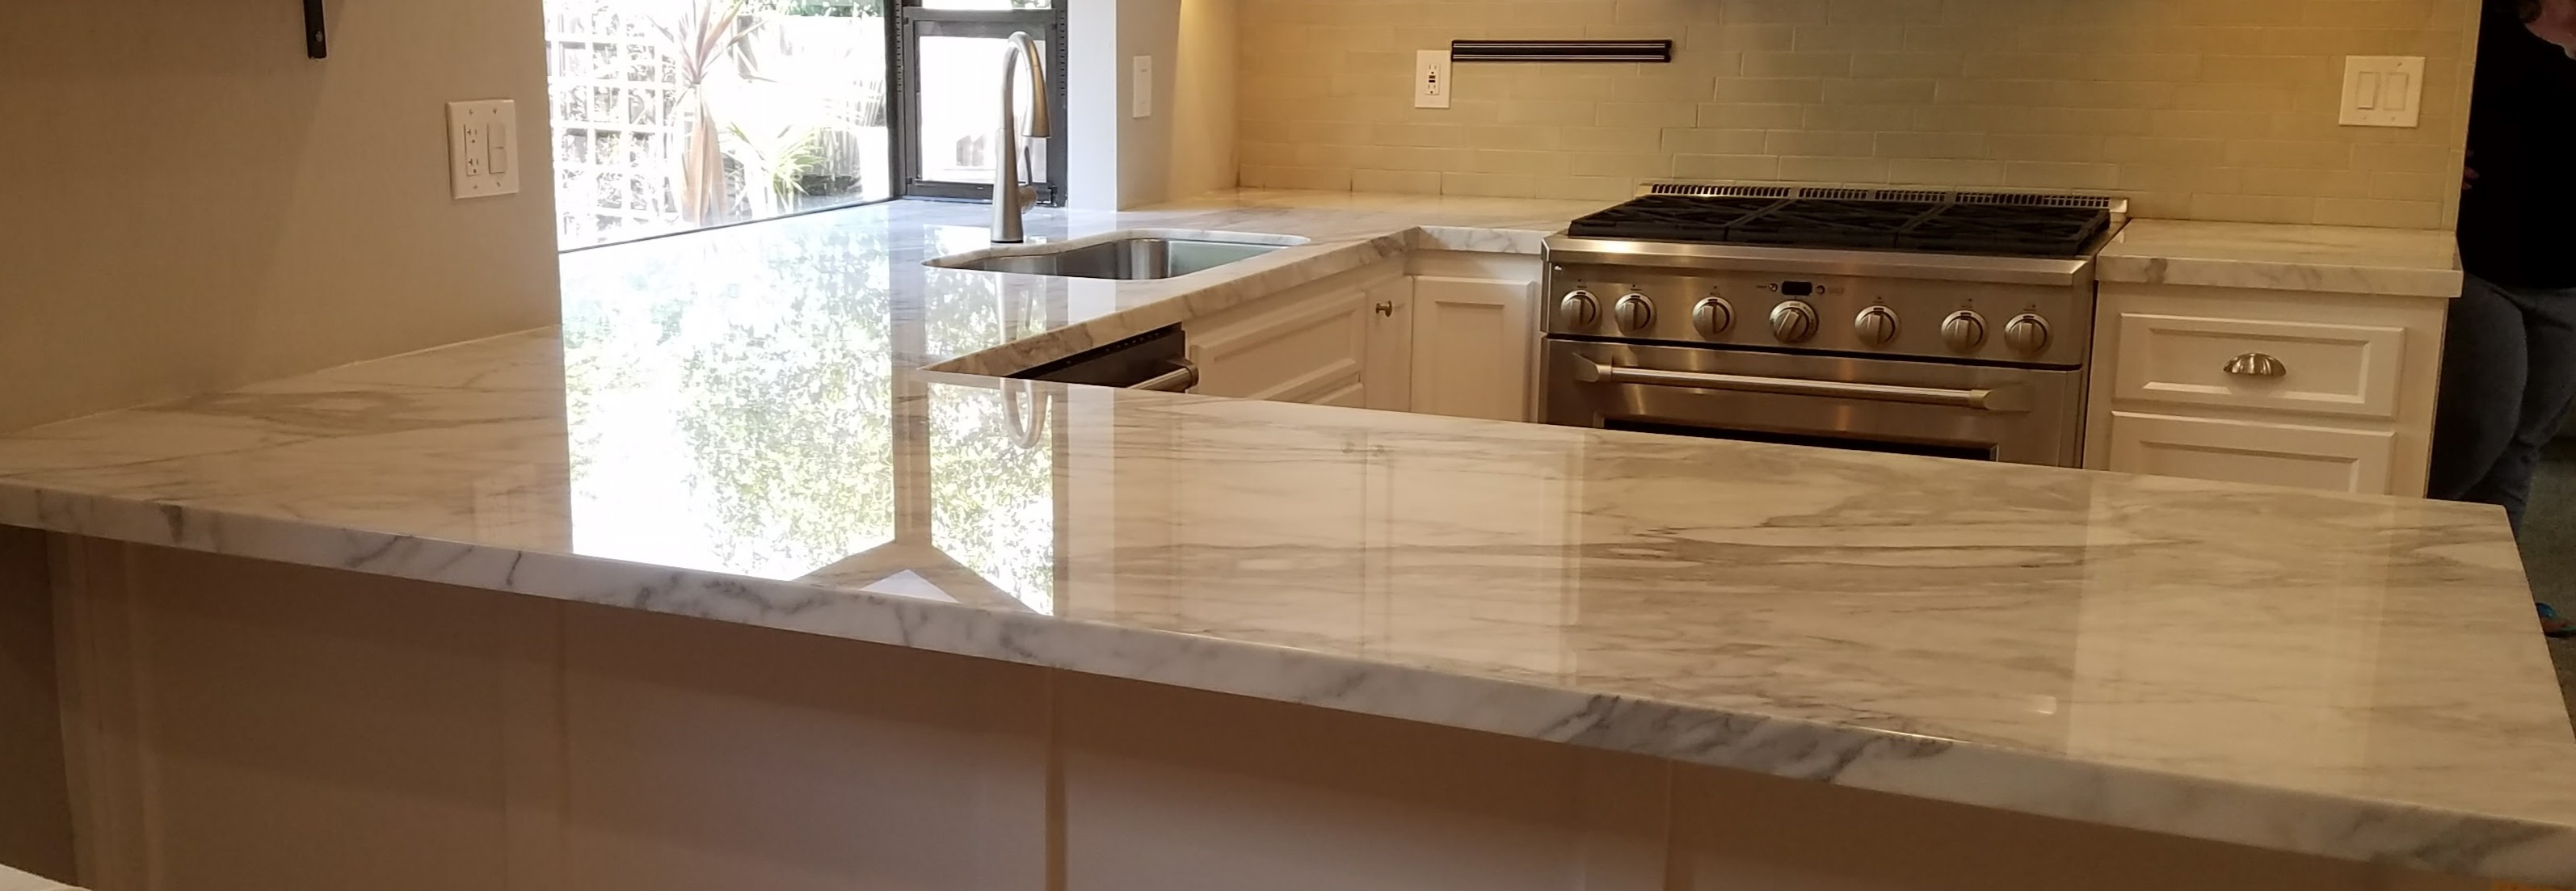 Polished marble kitchen counter top